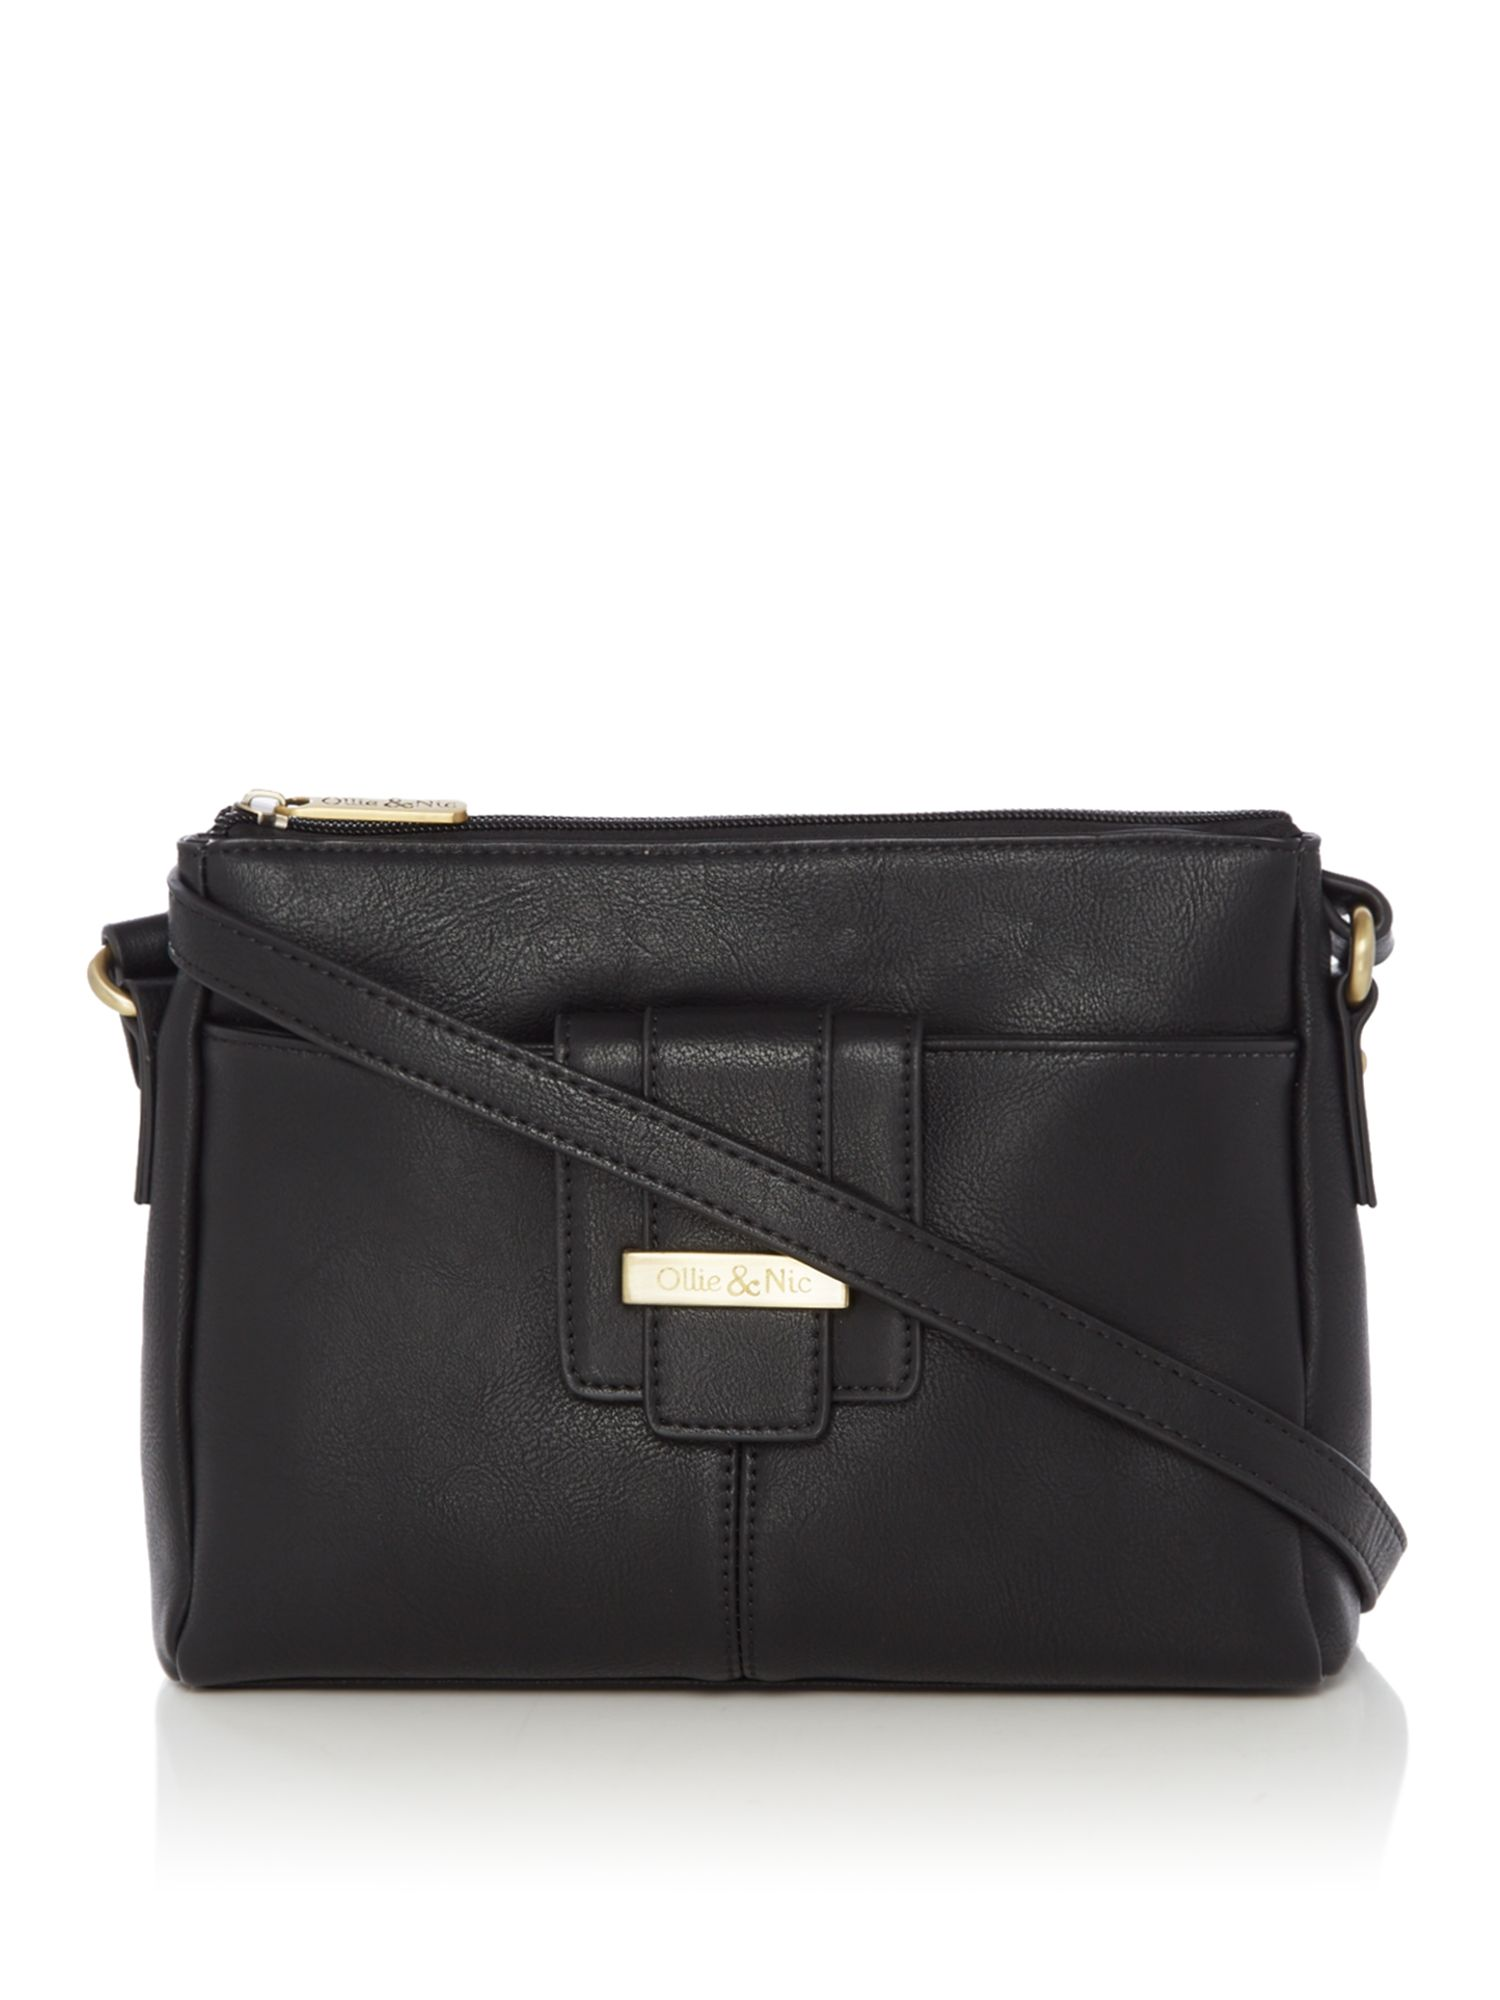 Ollie & Nic Evie crossbody, Black